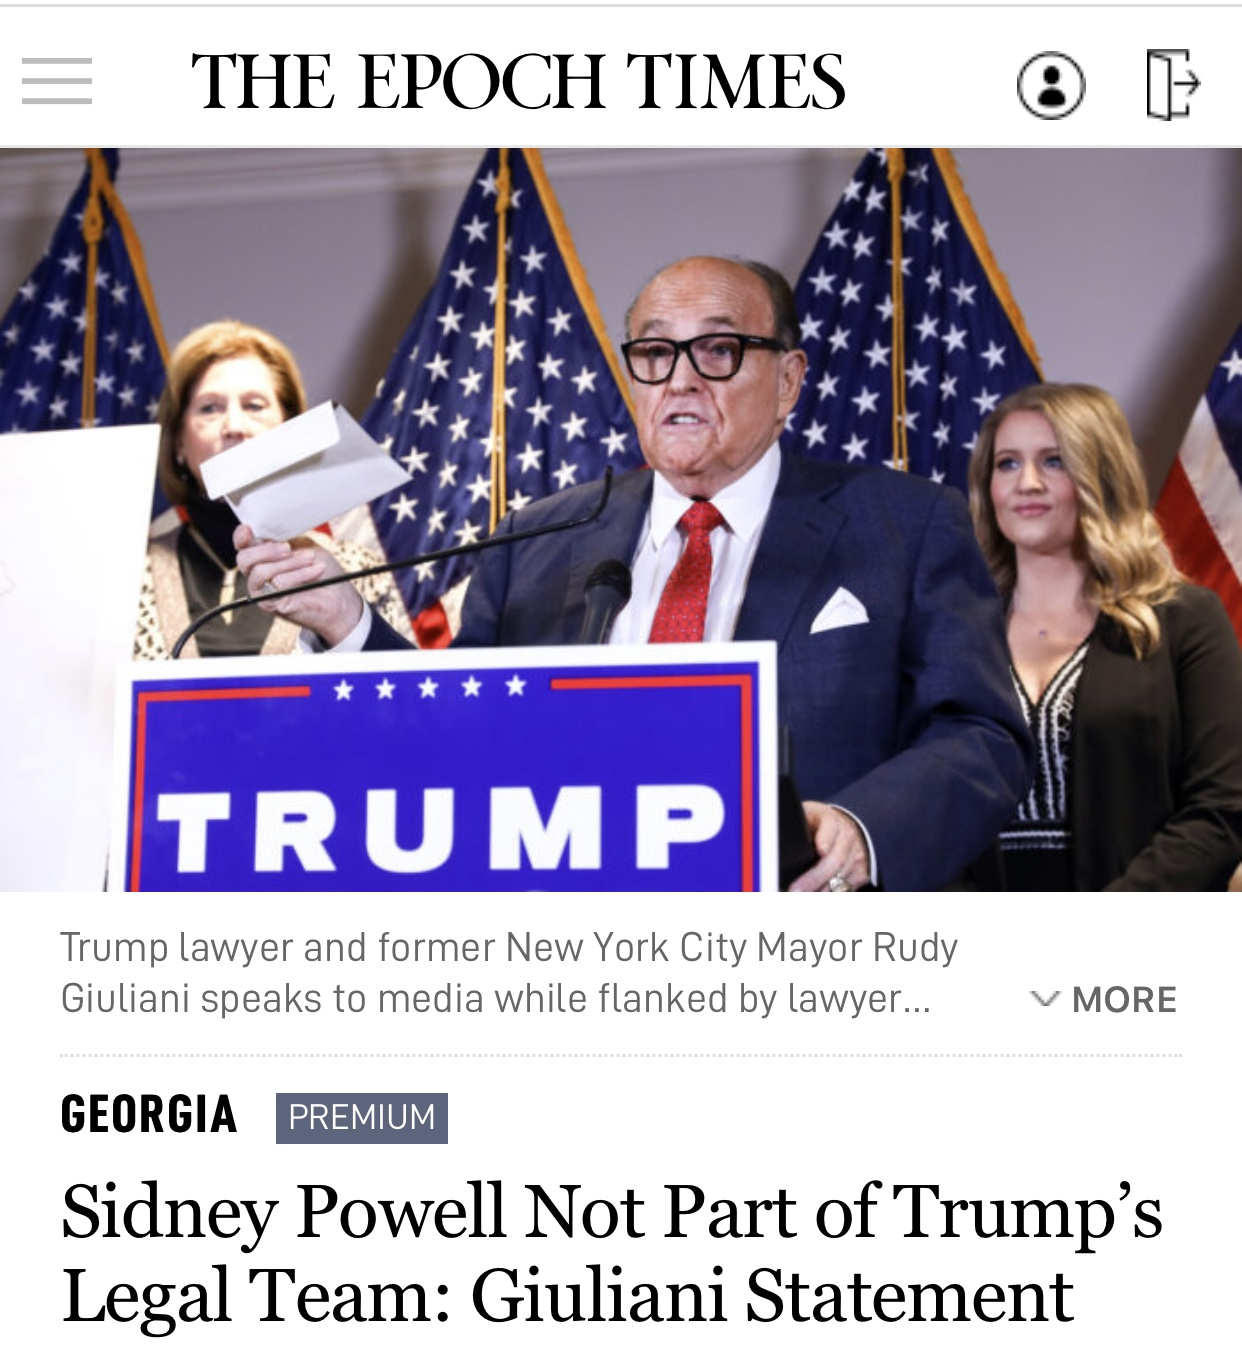 Sidney Powell Not Part of Trump's Legal Team: Giuliani Statement